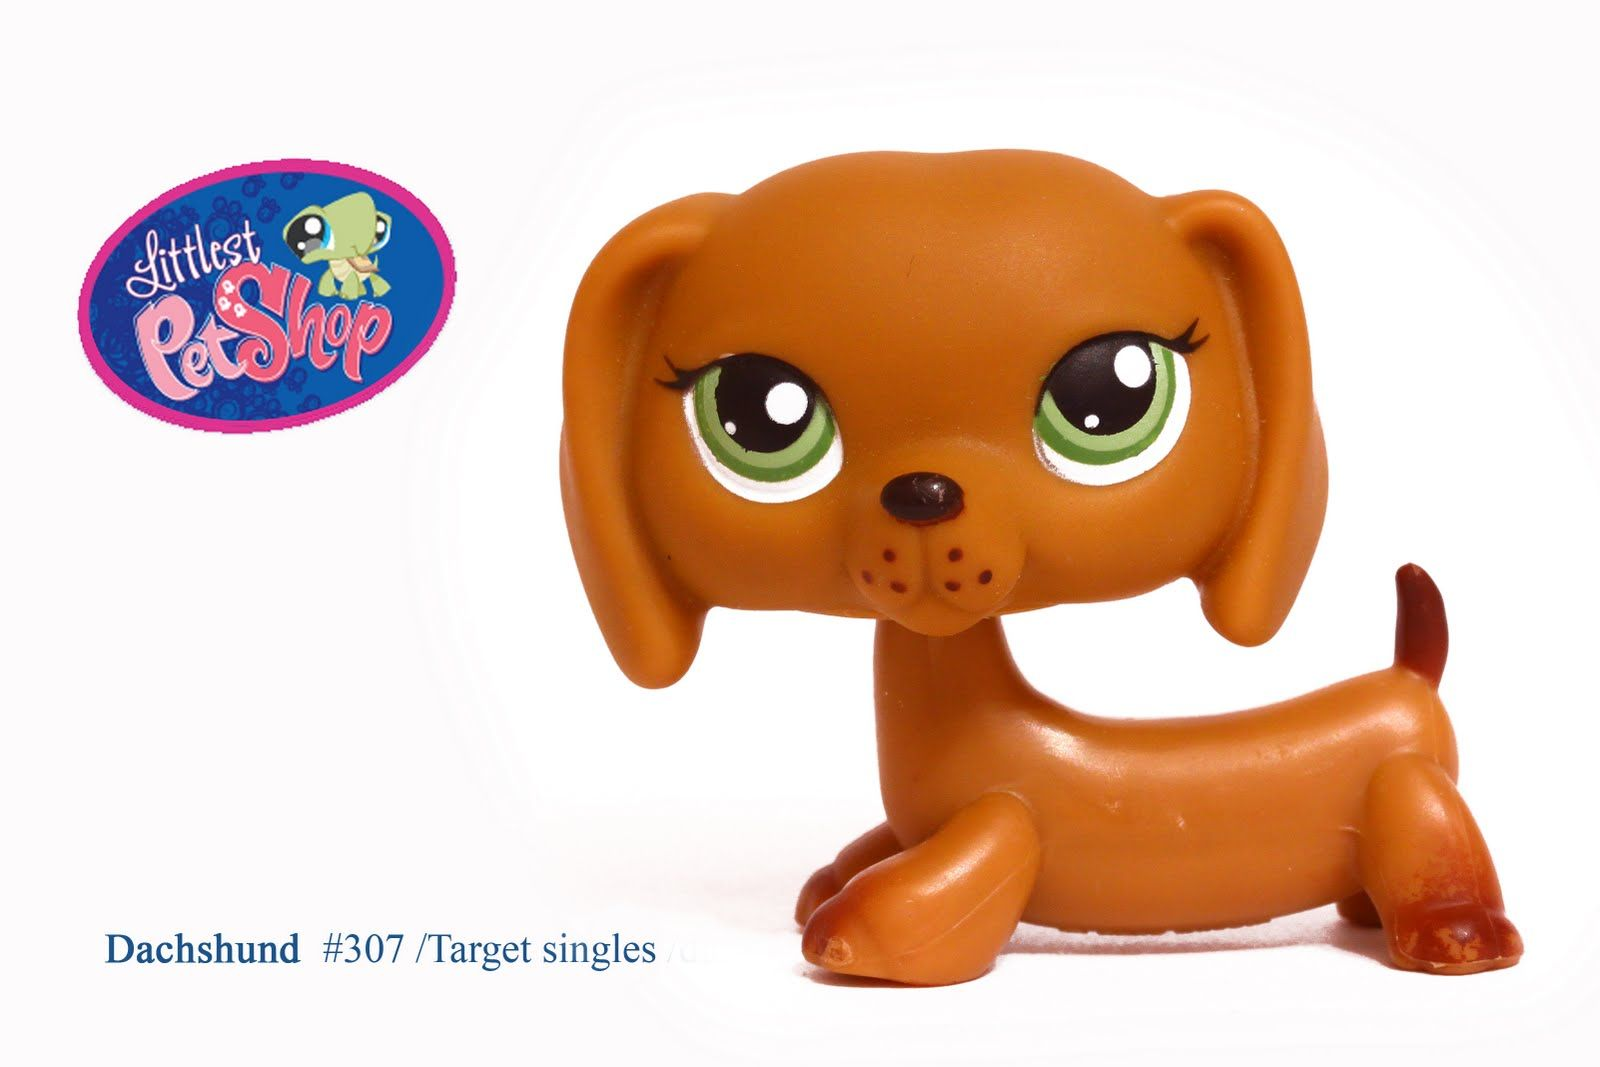 All The Lps Dachshunds Lps Dachshund Lps Dog Littlest Pet Shop